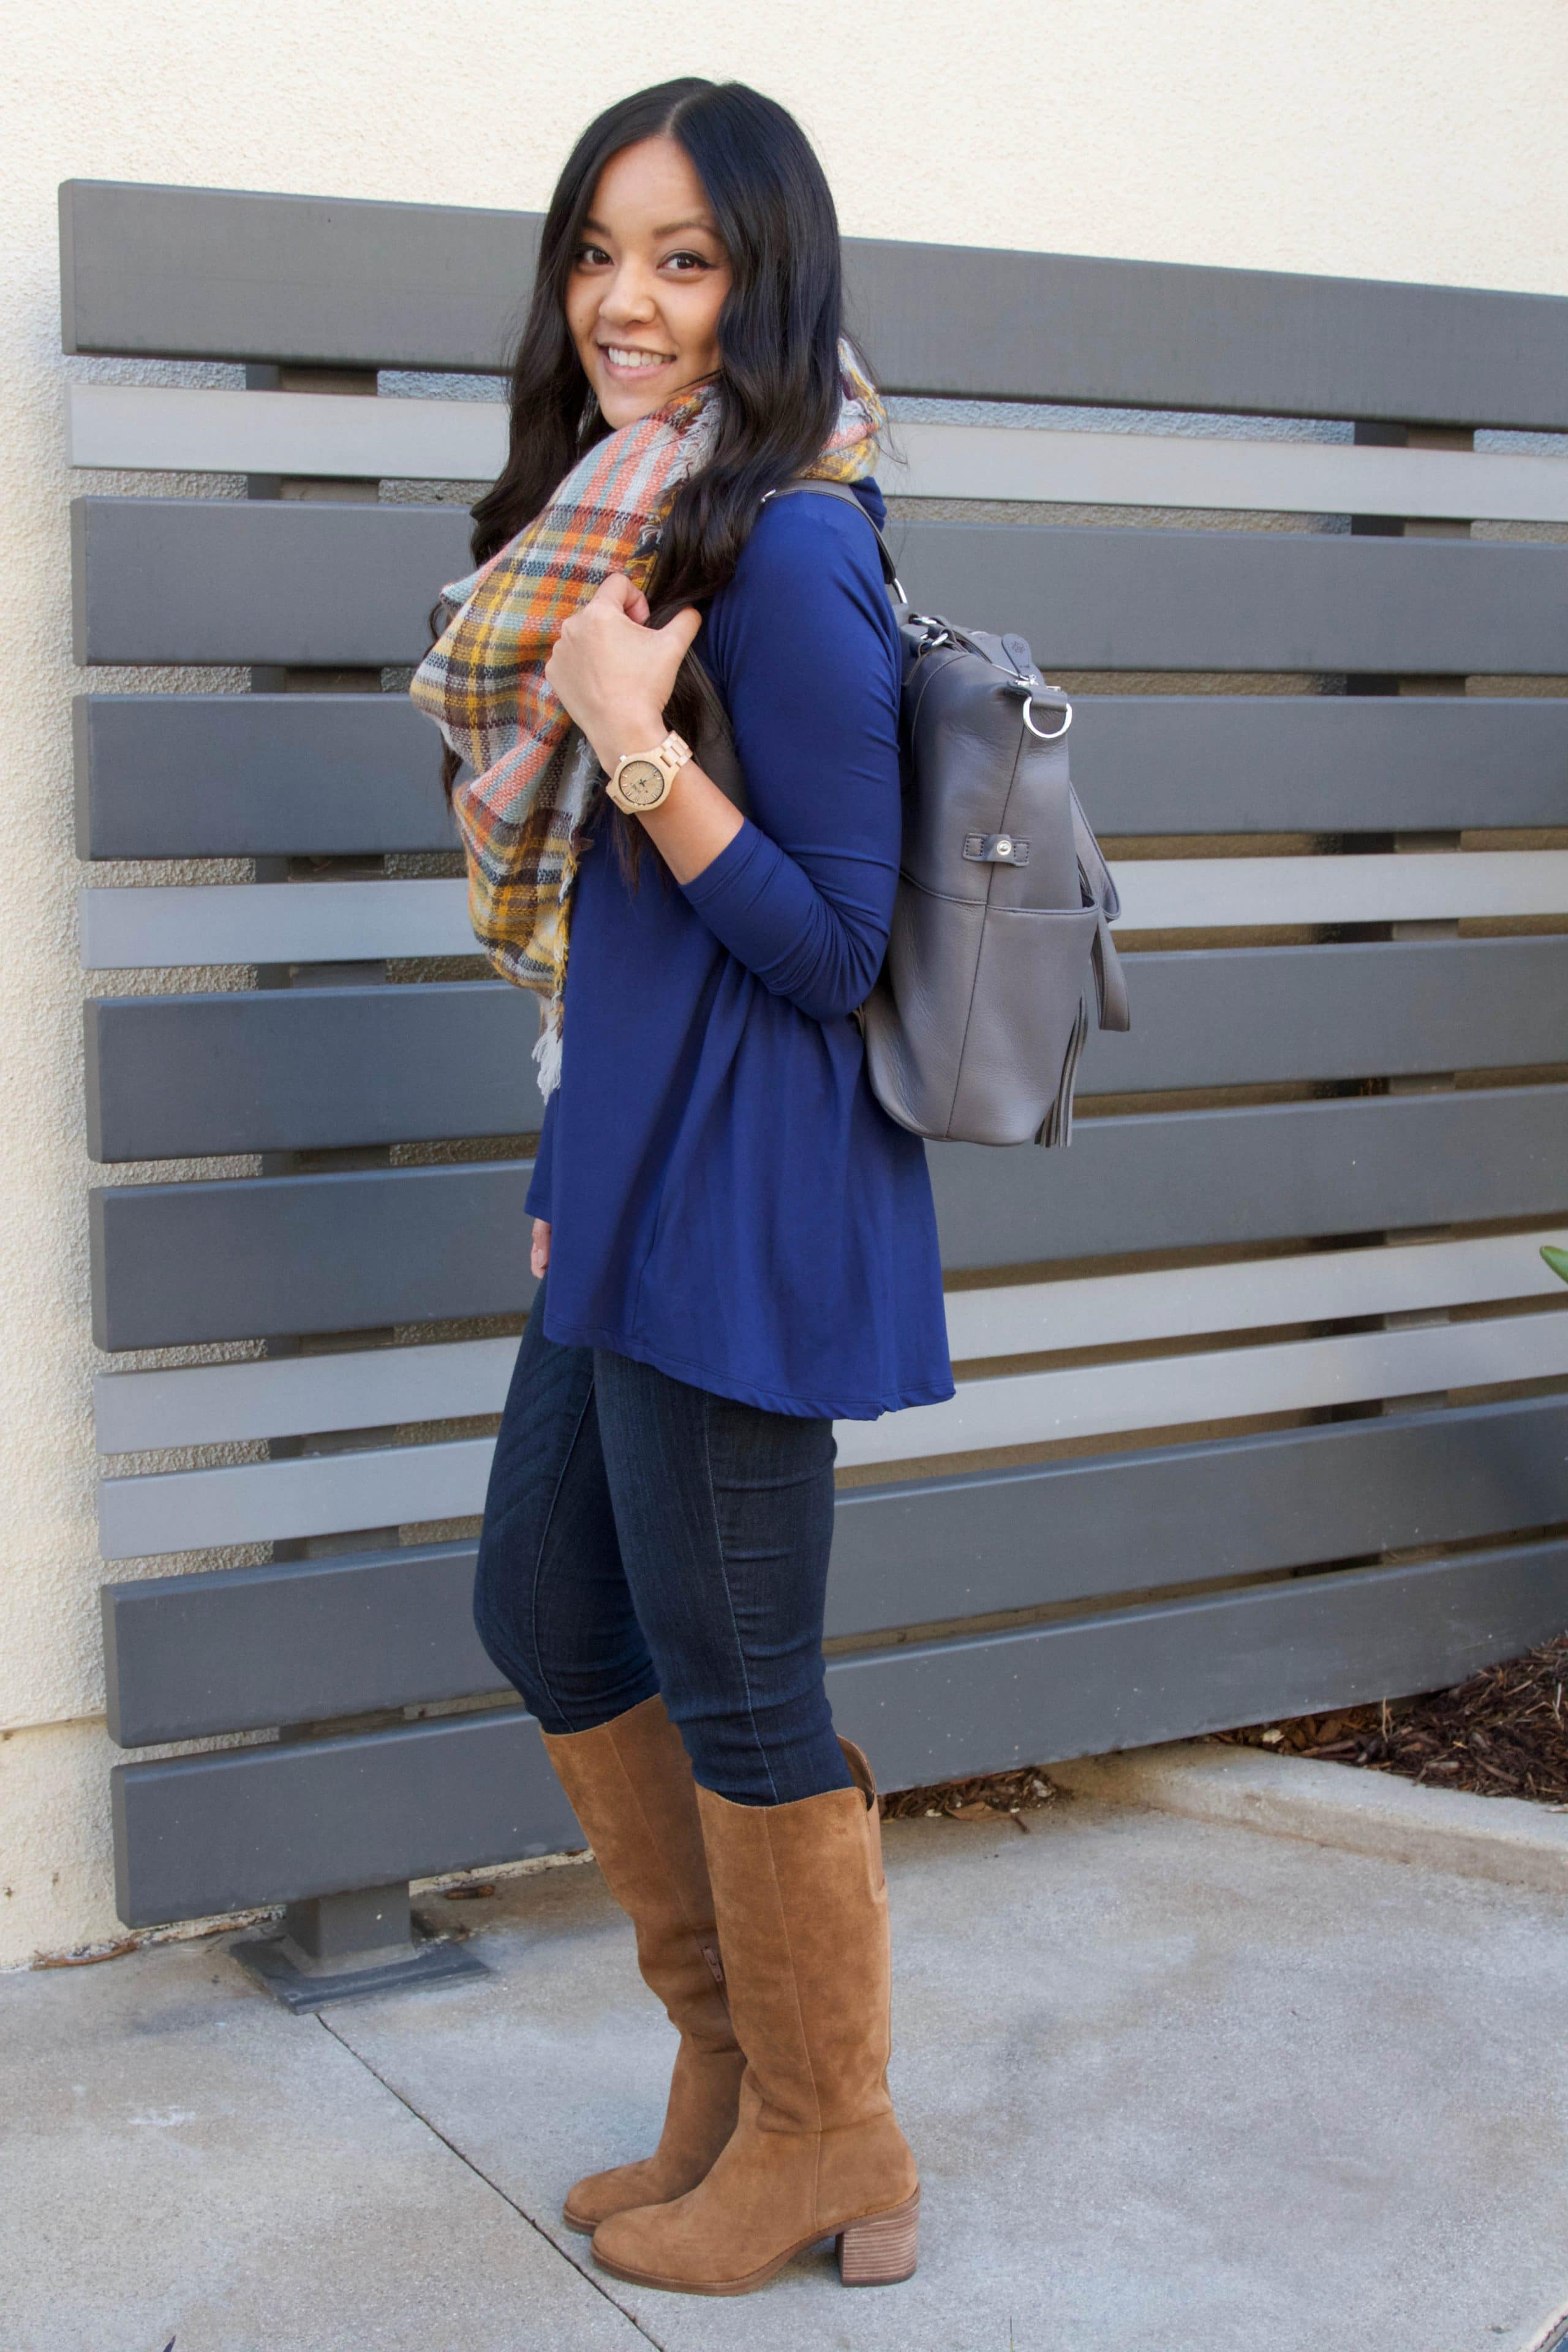 Blue Butter Tee + Blanket Scarf + Riding Boots + Lily Jade Bag